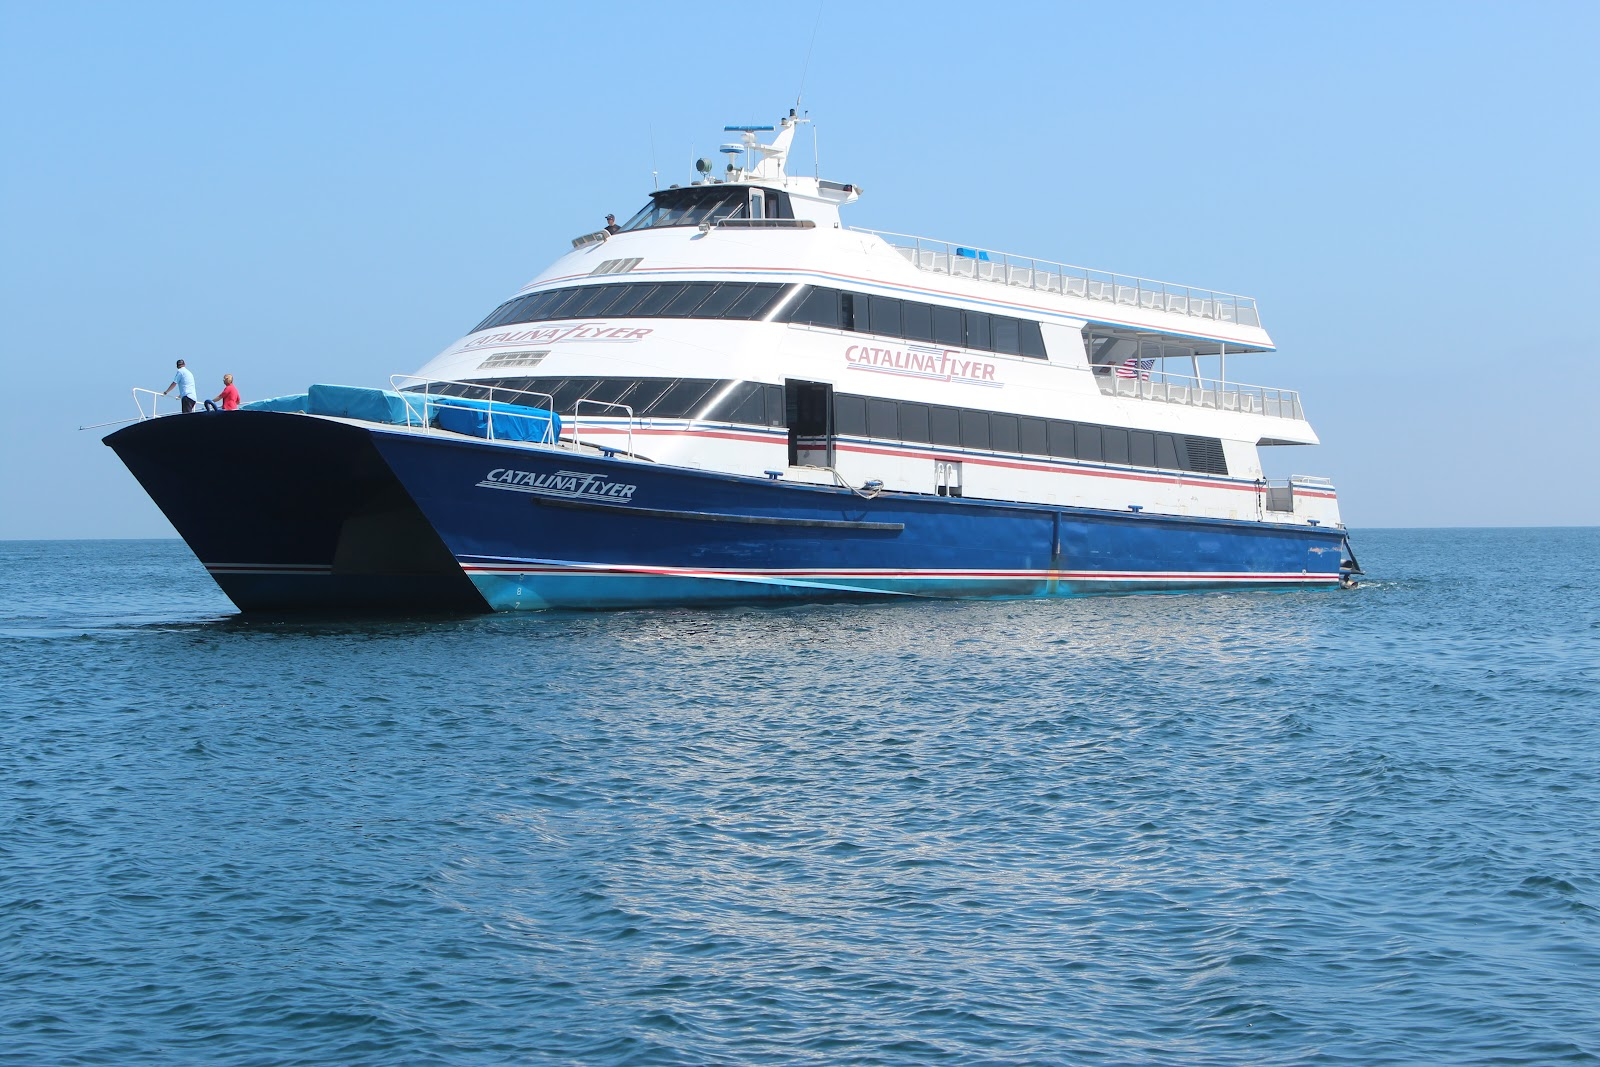 Roundtrip ferry transportation to Catalina Island is aboard Catalina Express and Sightseeing Tours · Must-See Attractions · Shows & Events · Activities & ExcursionsShop travel: Bundle and Save, Cars, Cruises, Deals, Discover, Event Tickets and more.